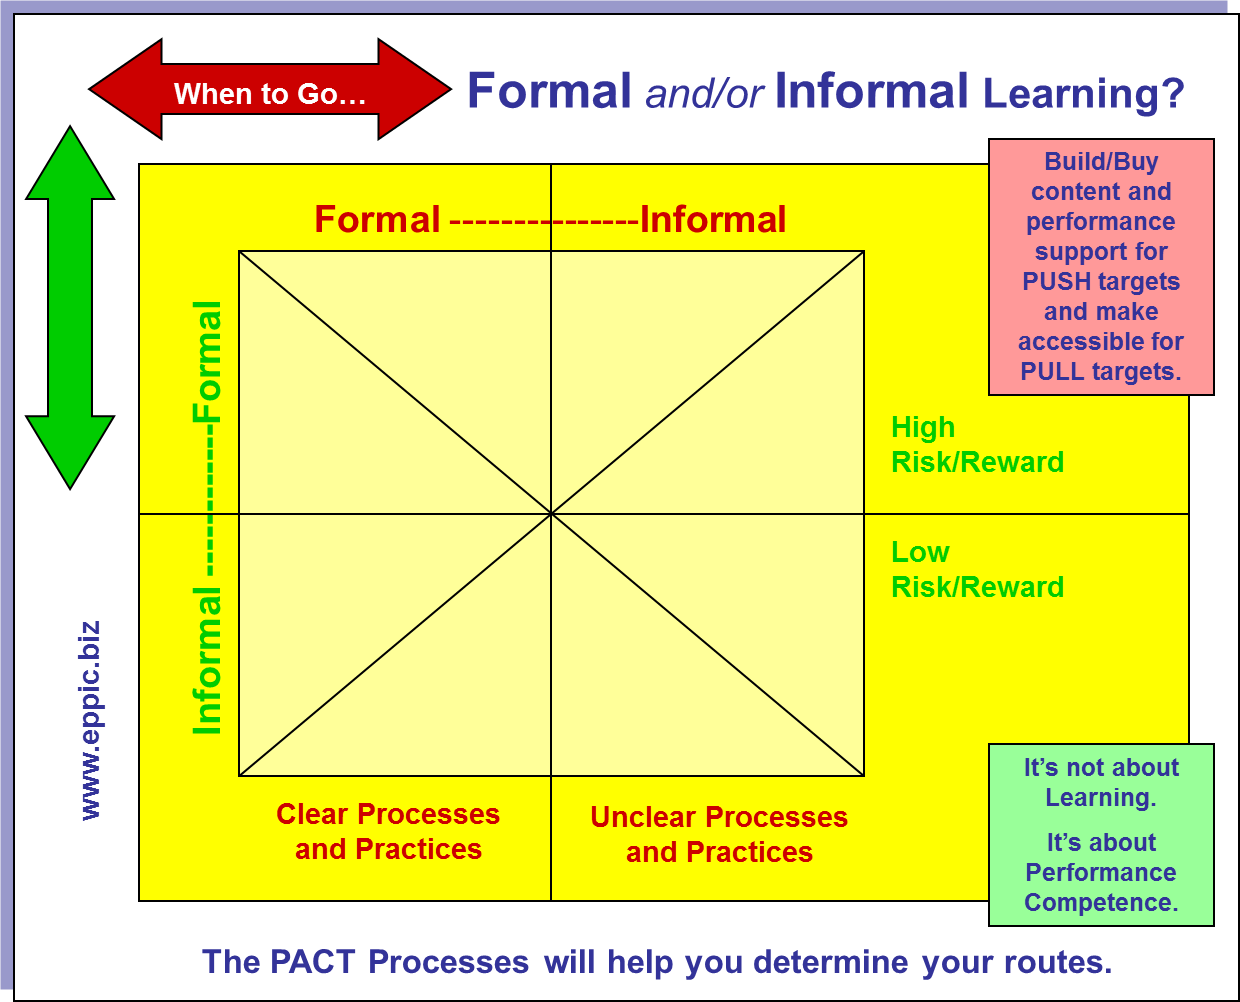 enabling learning through assessment Enabling learning through the assessment process by major william t willey, united states army, 44 pages the problem facing practitioners of emerging army doctrine is how to expand the use of.